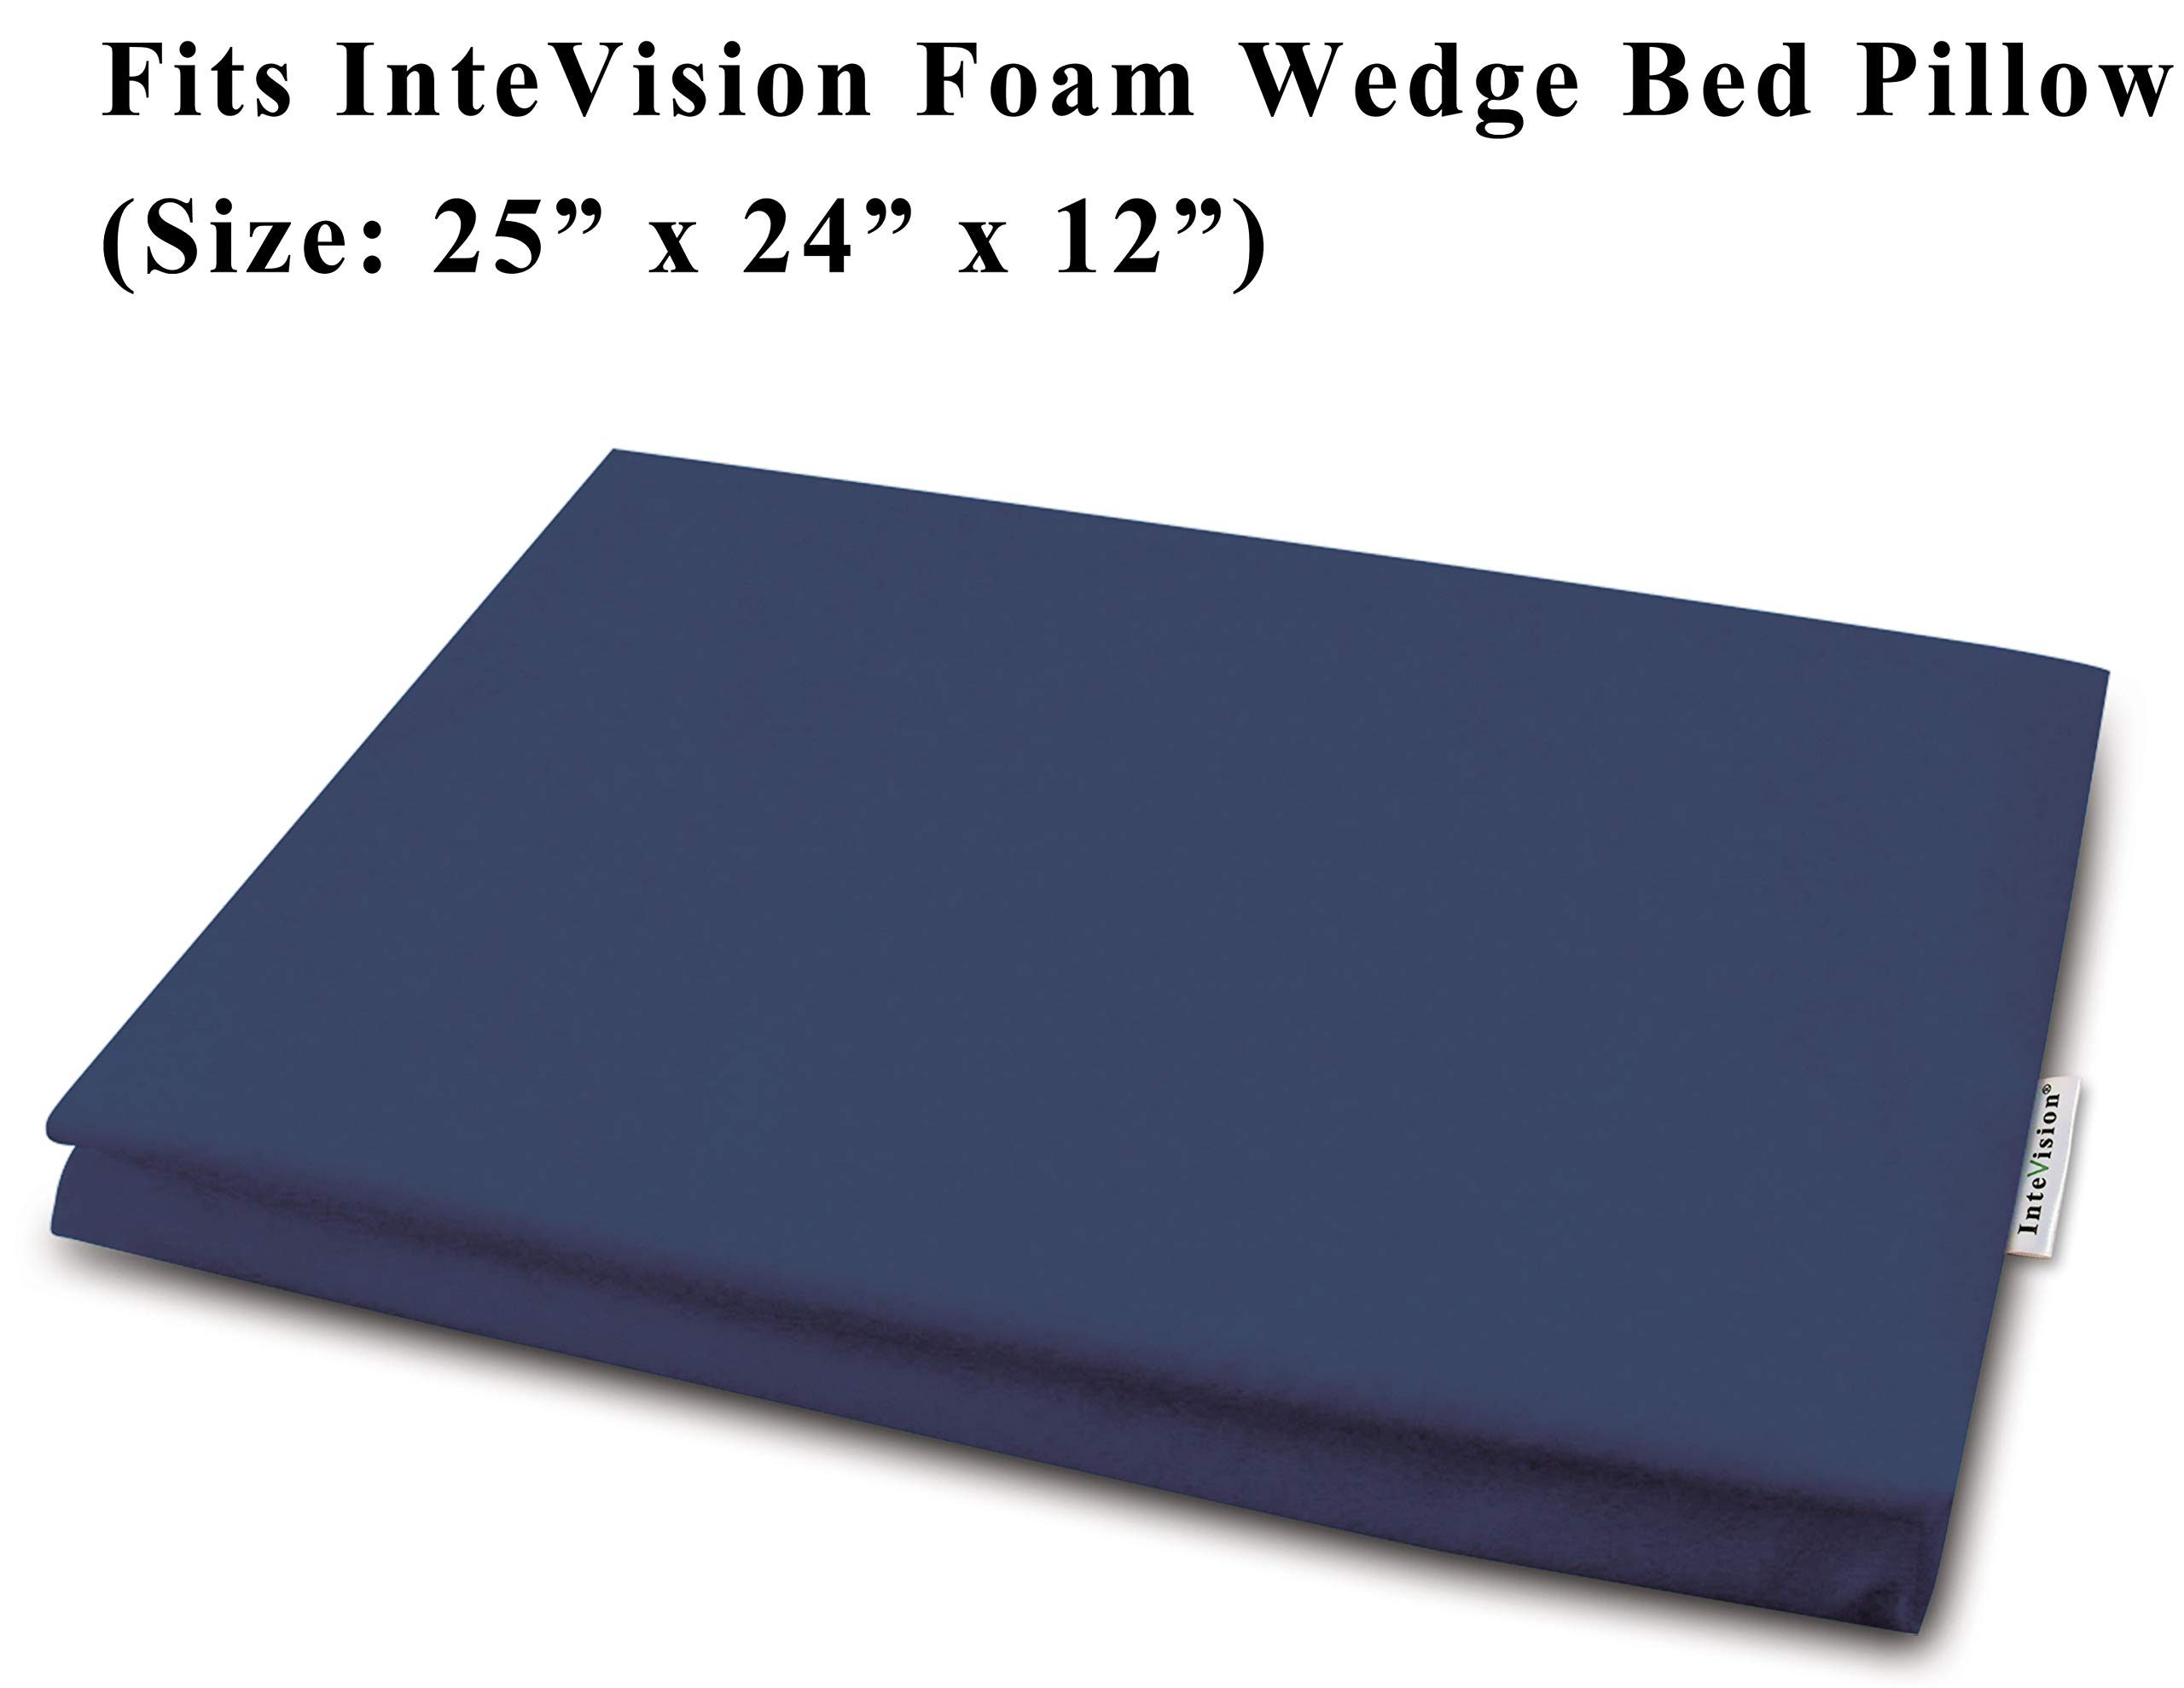 InteVision 400 Thread Count, 100% Egyptian Cotton Bed Wedge Pillowcase; Replacement Cover Designed to Fit the 12'' (Height) Version of the InteVision Foam Wedge Bed Pillow (25'' x 24'' x 12'') by InteVision